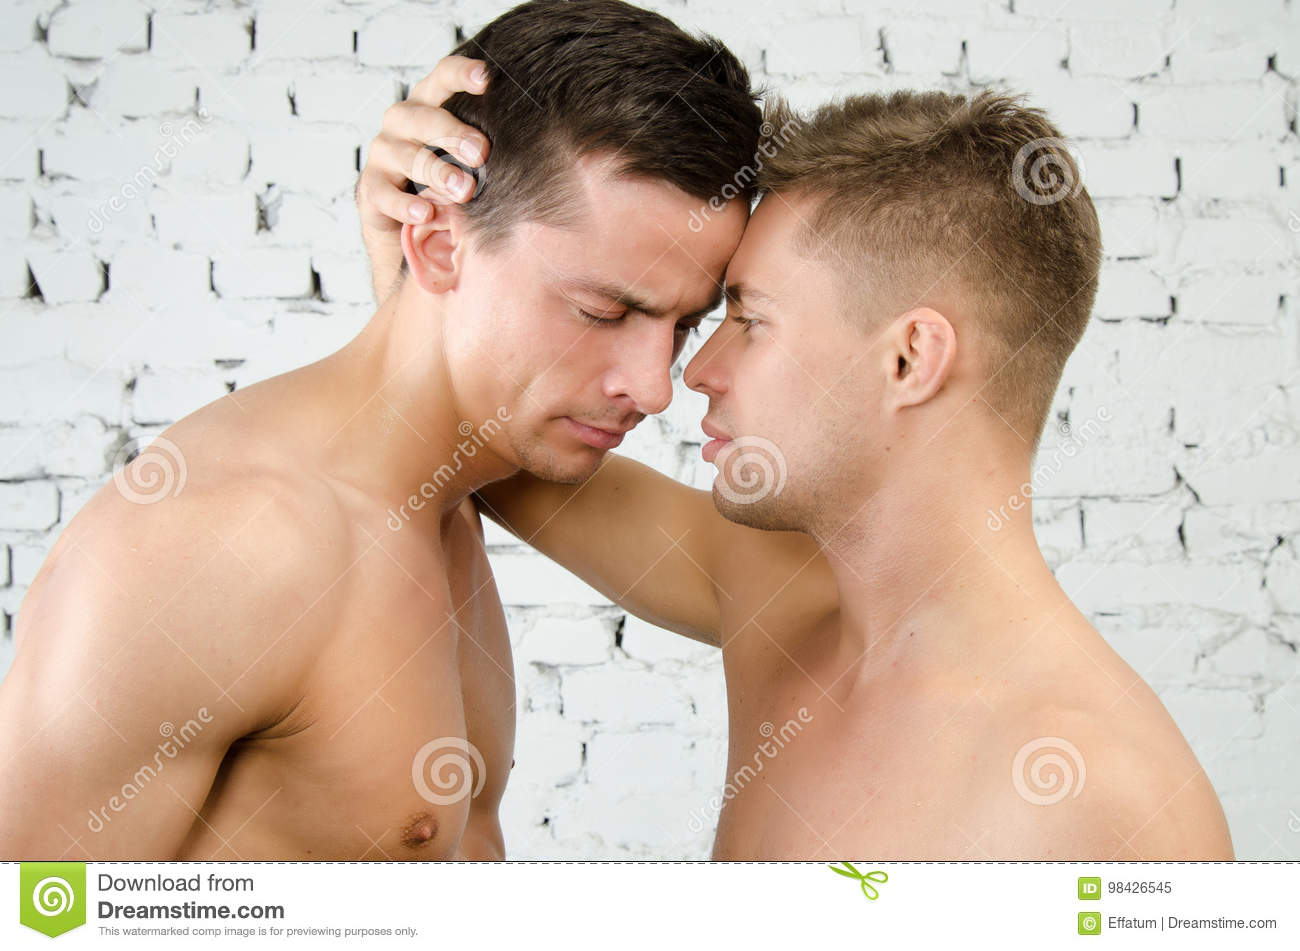 Quarrels and kisses. Love and relationships. Two guys.